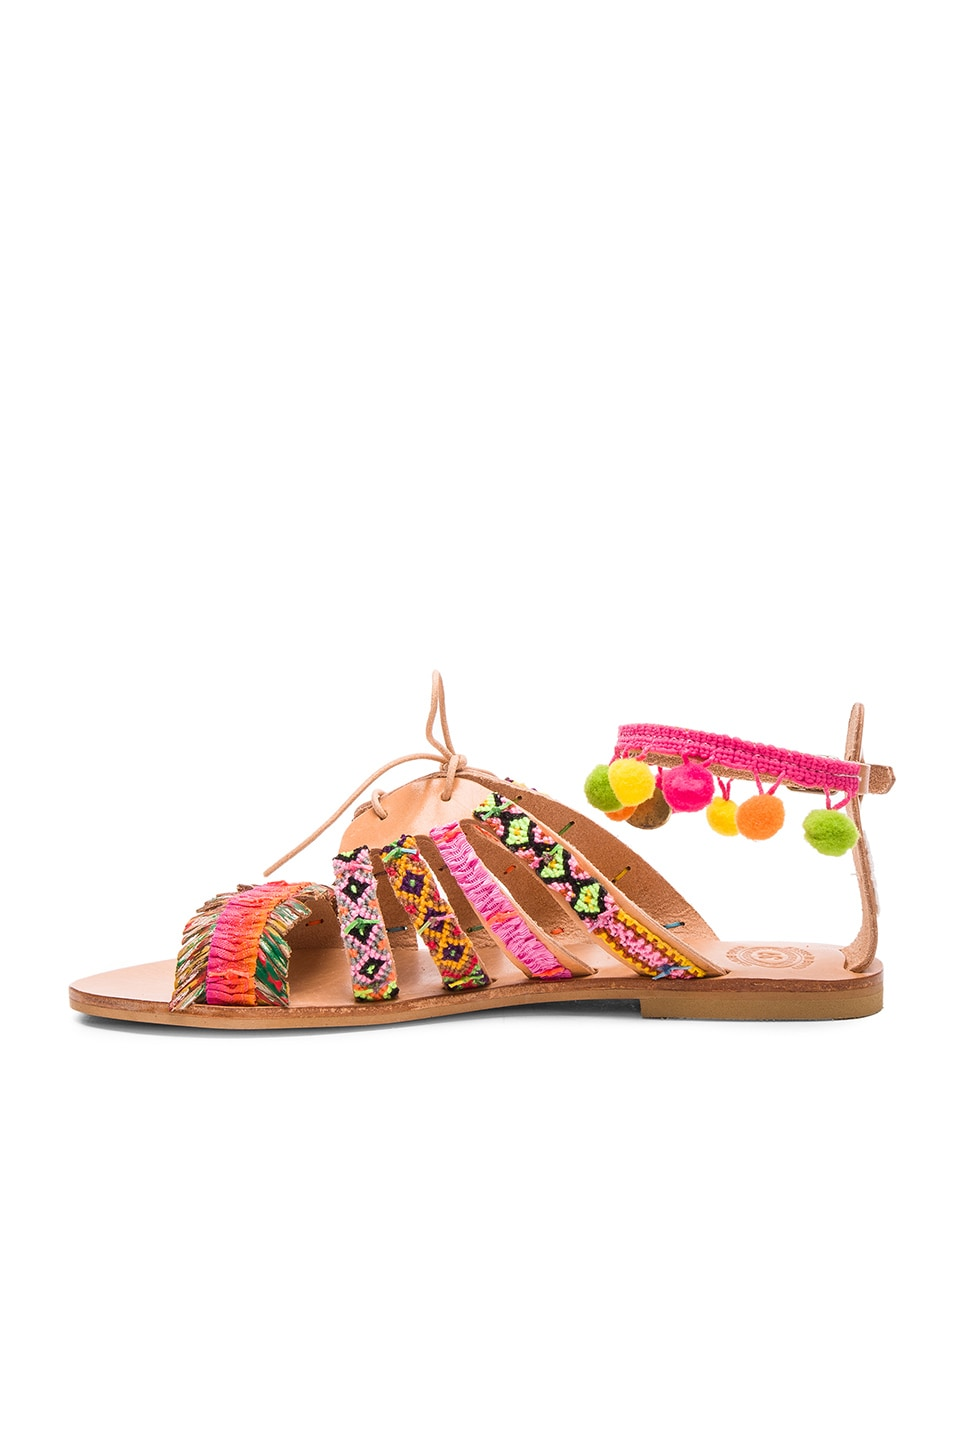 Image 5 of Elina Linardaki Leather Hula Hoop Sandals in Multi